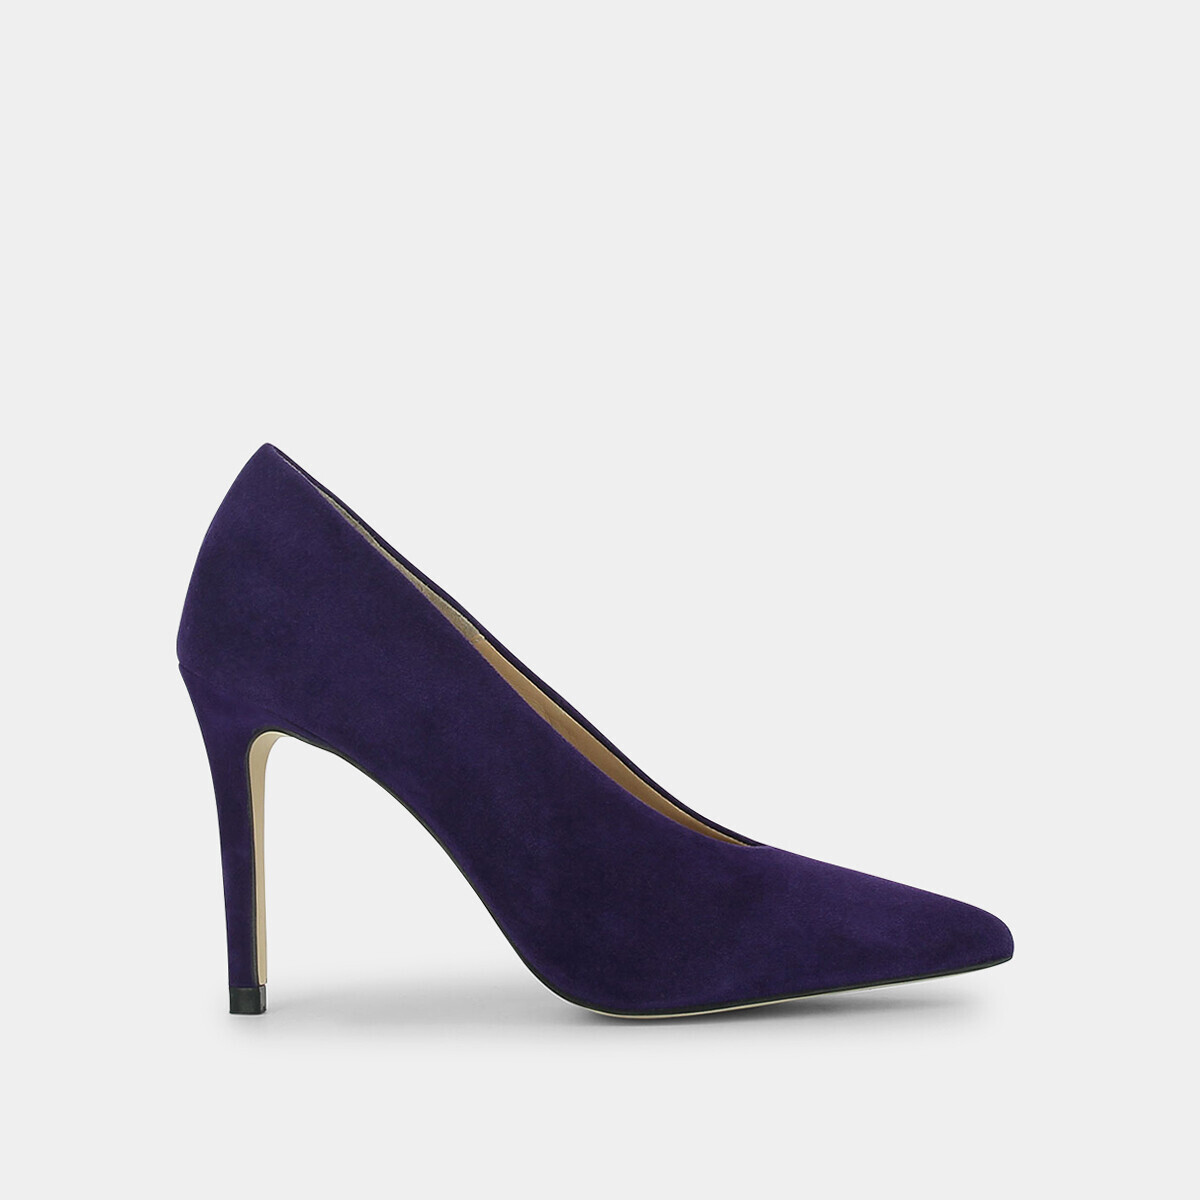 High heeled pumps in purple suede - Jonak violet